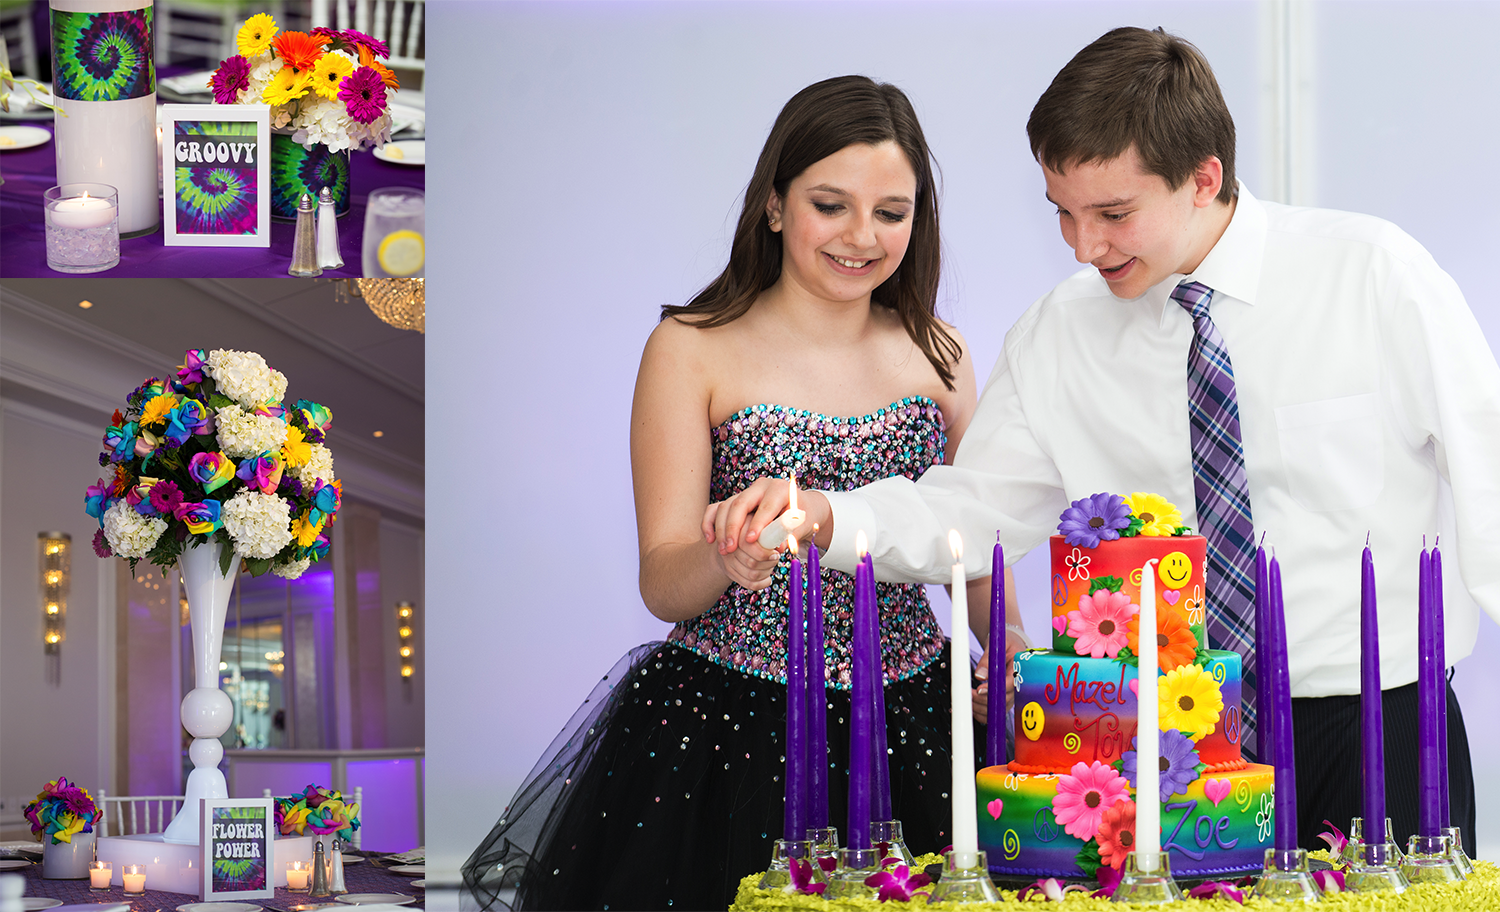 Bar-Bat-Mitzvah-Premier-Philadelphia-Photographer-Details-Style-Tie-Dye-Cake-Center-Piece-Hippy-Themed-Colors-Table-Card-Ideas-Exceptional-Events-Hilton-City-Ave-All-Around-Entertainment